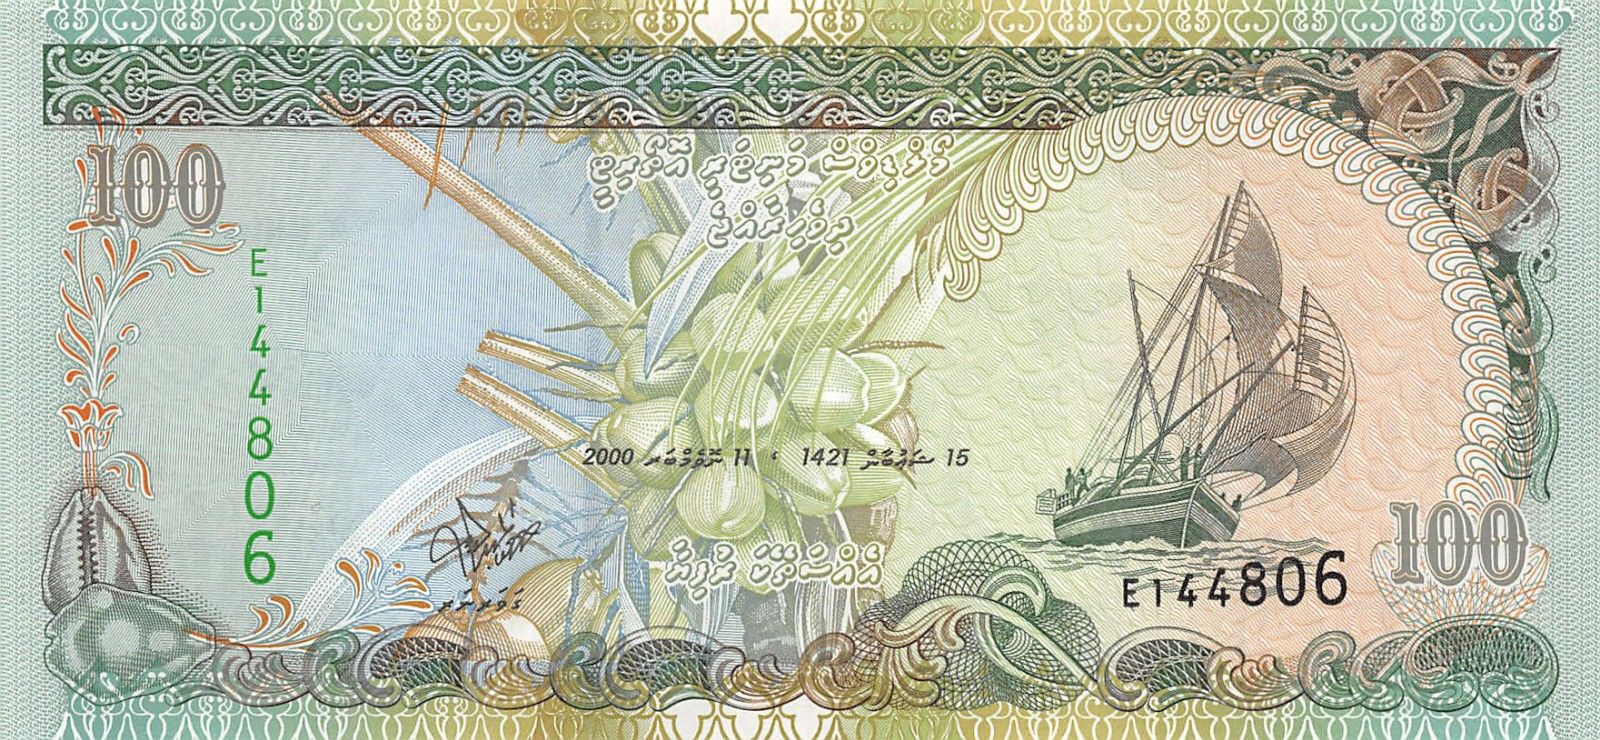 most beautiful money in the world